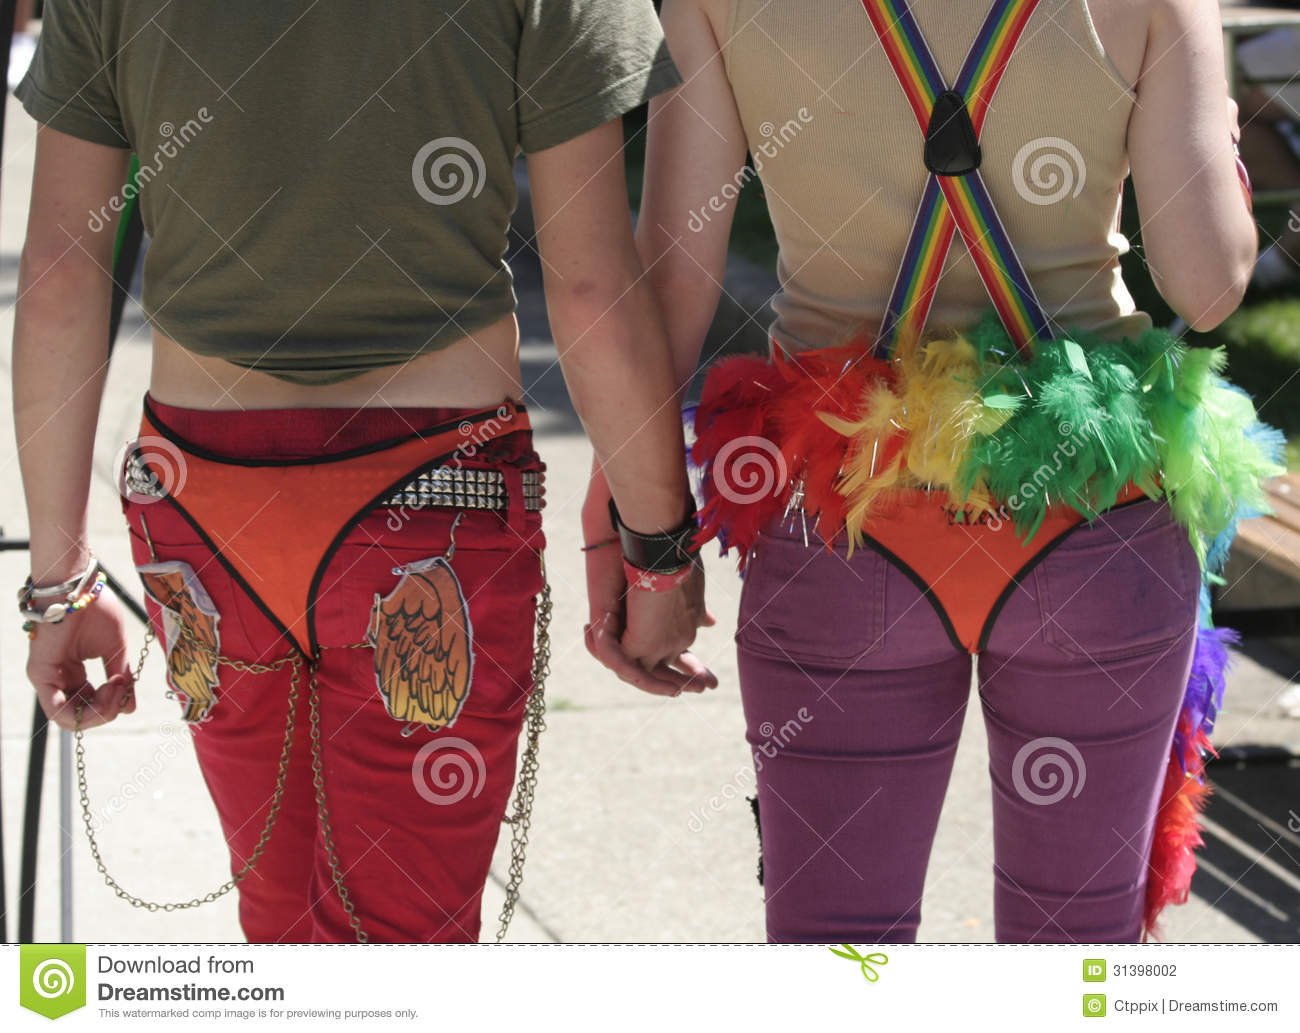 A Happy and Colorful Couple holding hands at Indy Pride